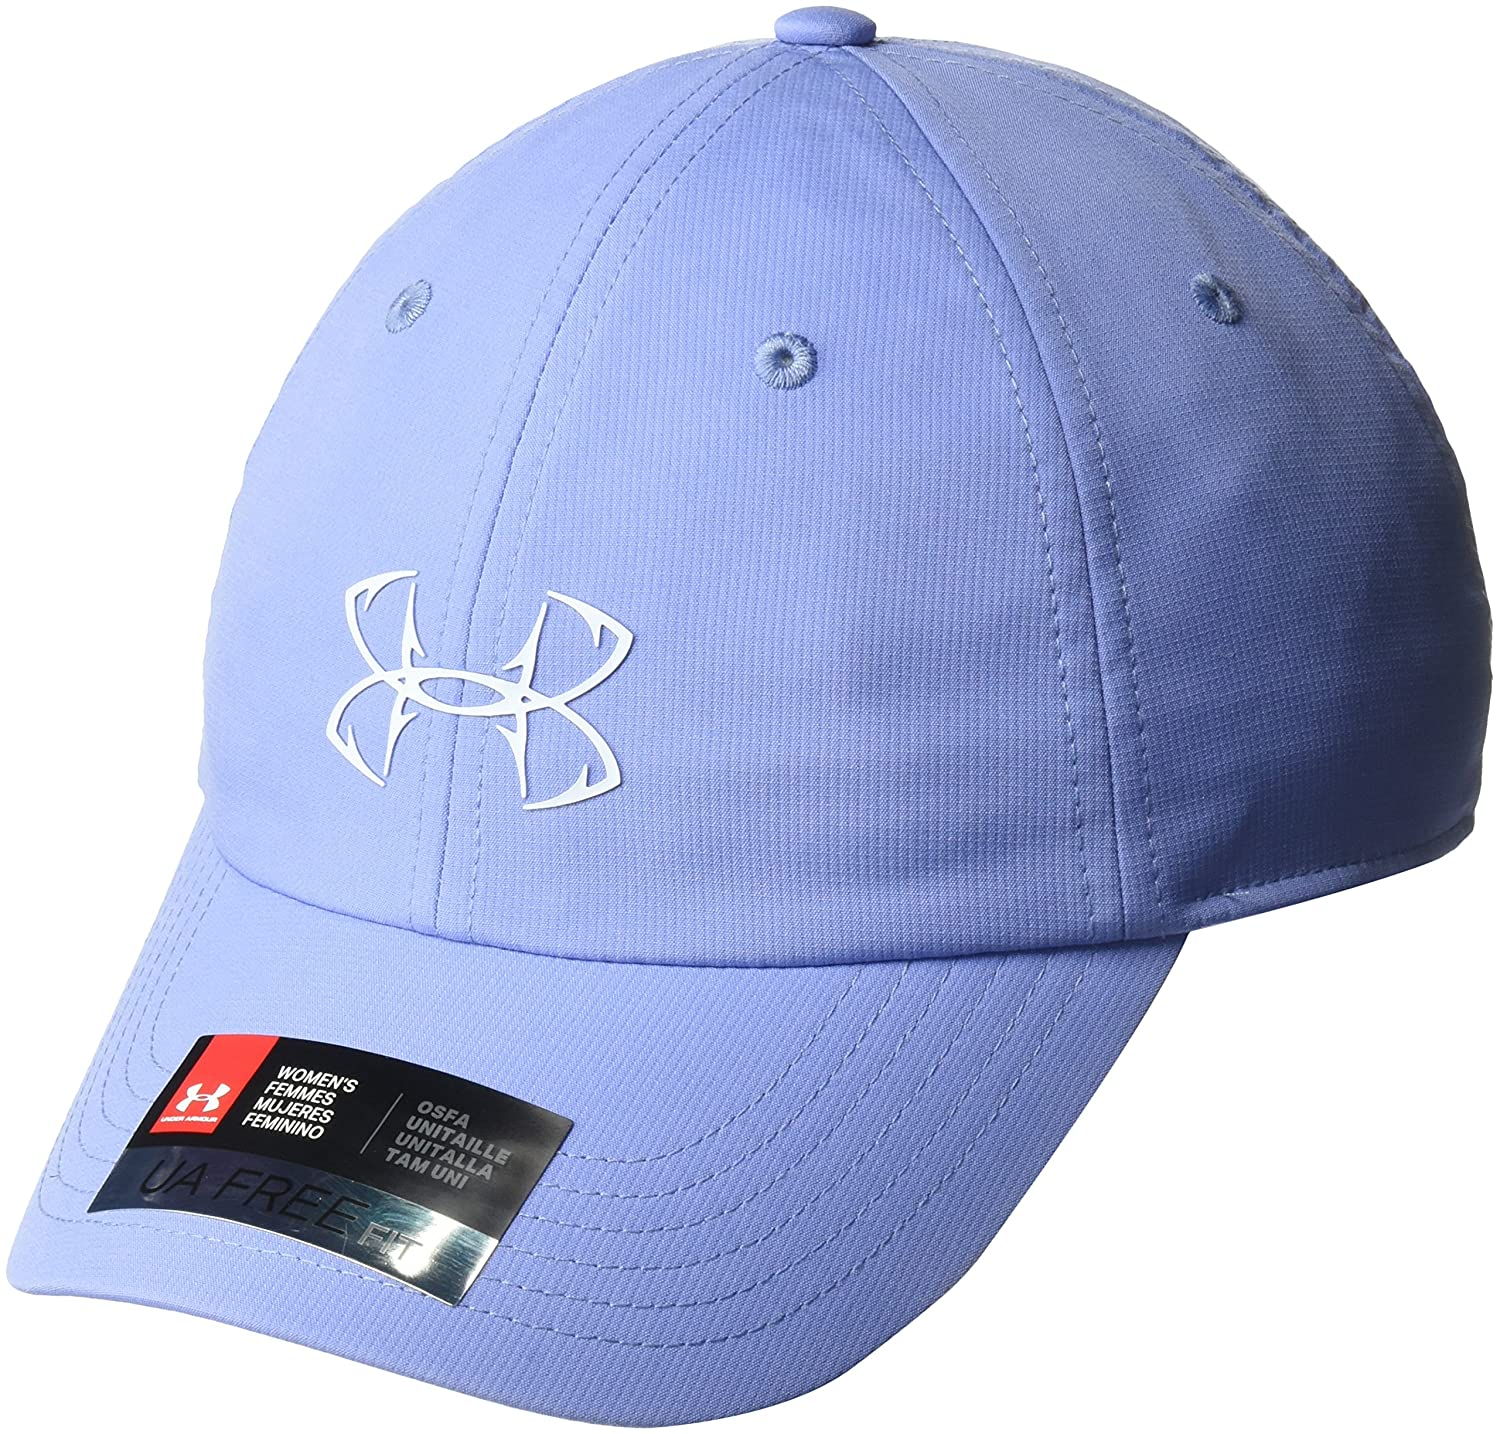 Under Armour Giacca da Donna Storm Fish cap Cappello, Donna, Talc Blue/Oxford Blue, Taglia Unica Under Armour Outdoors 1306287